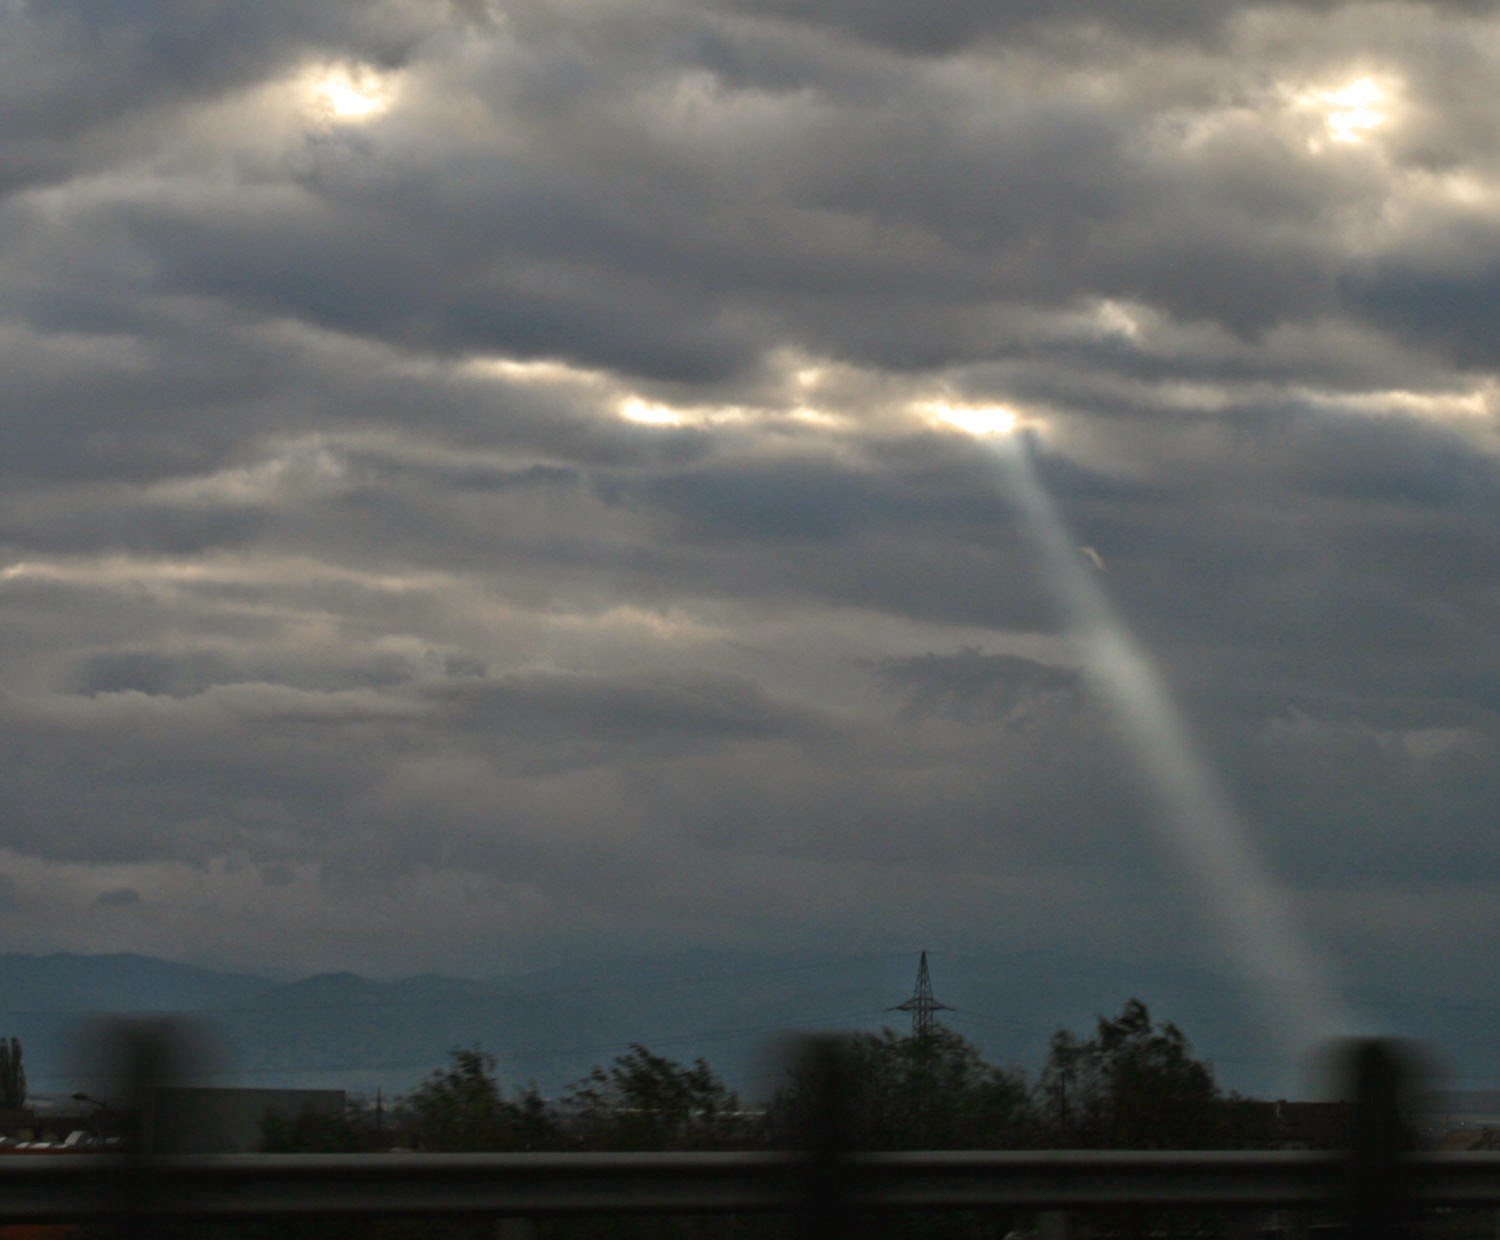 A single shaft of sunlight breaks through the clouds